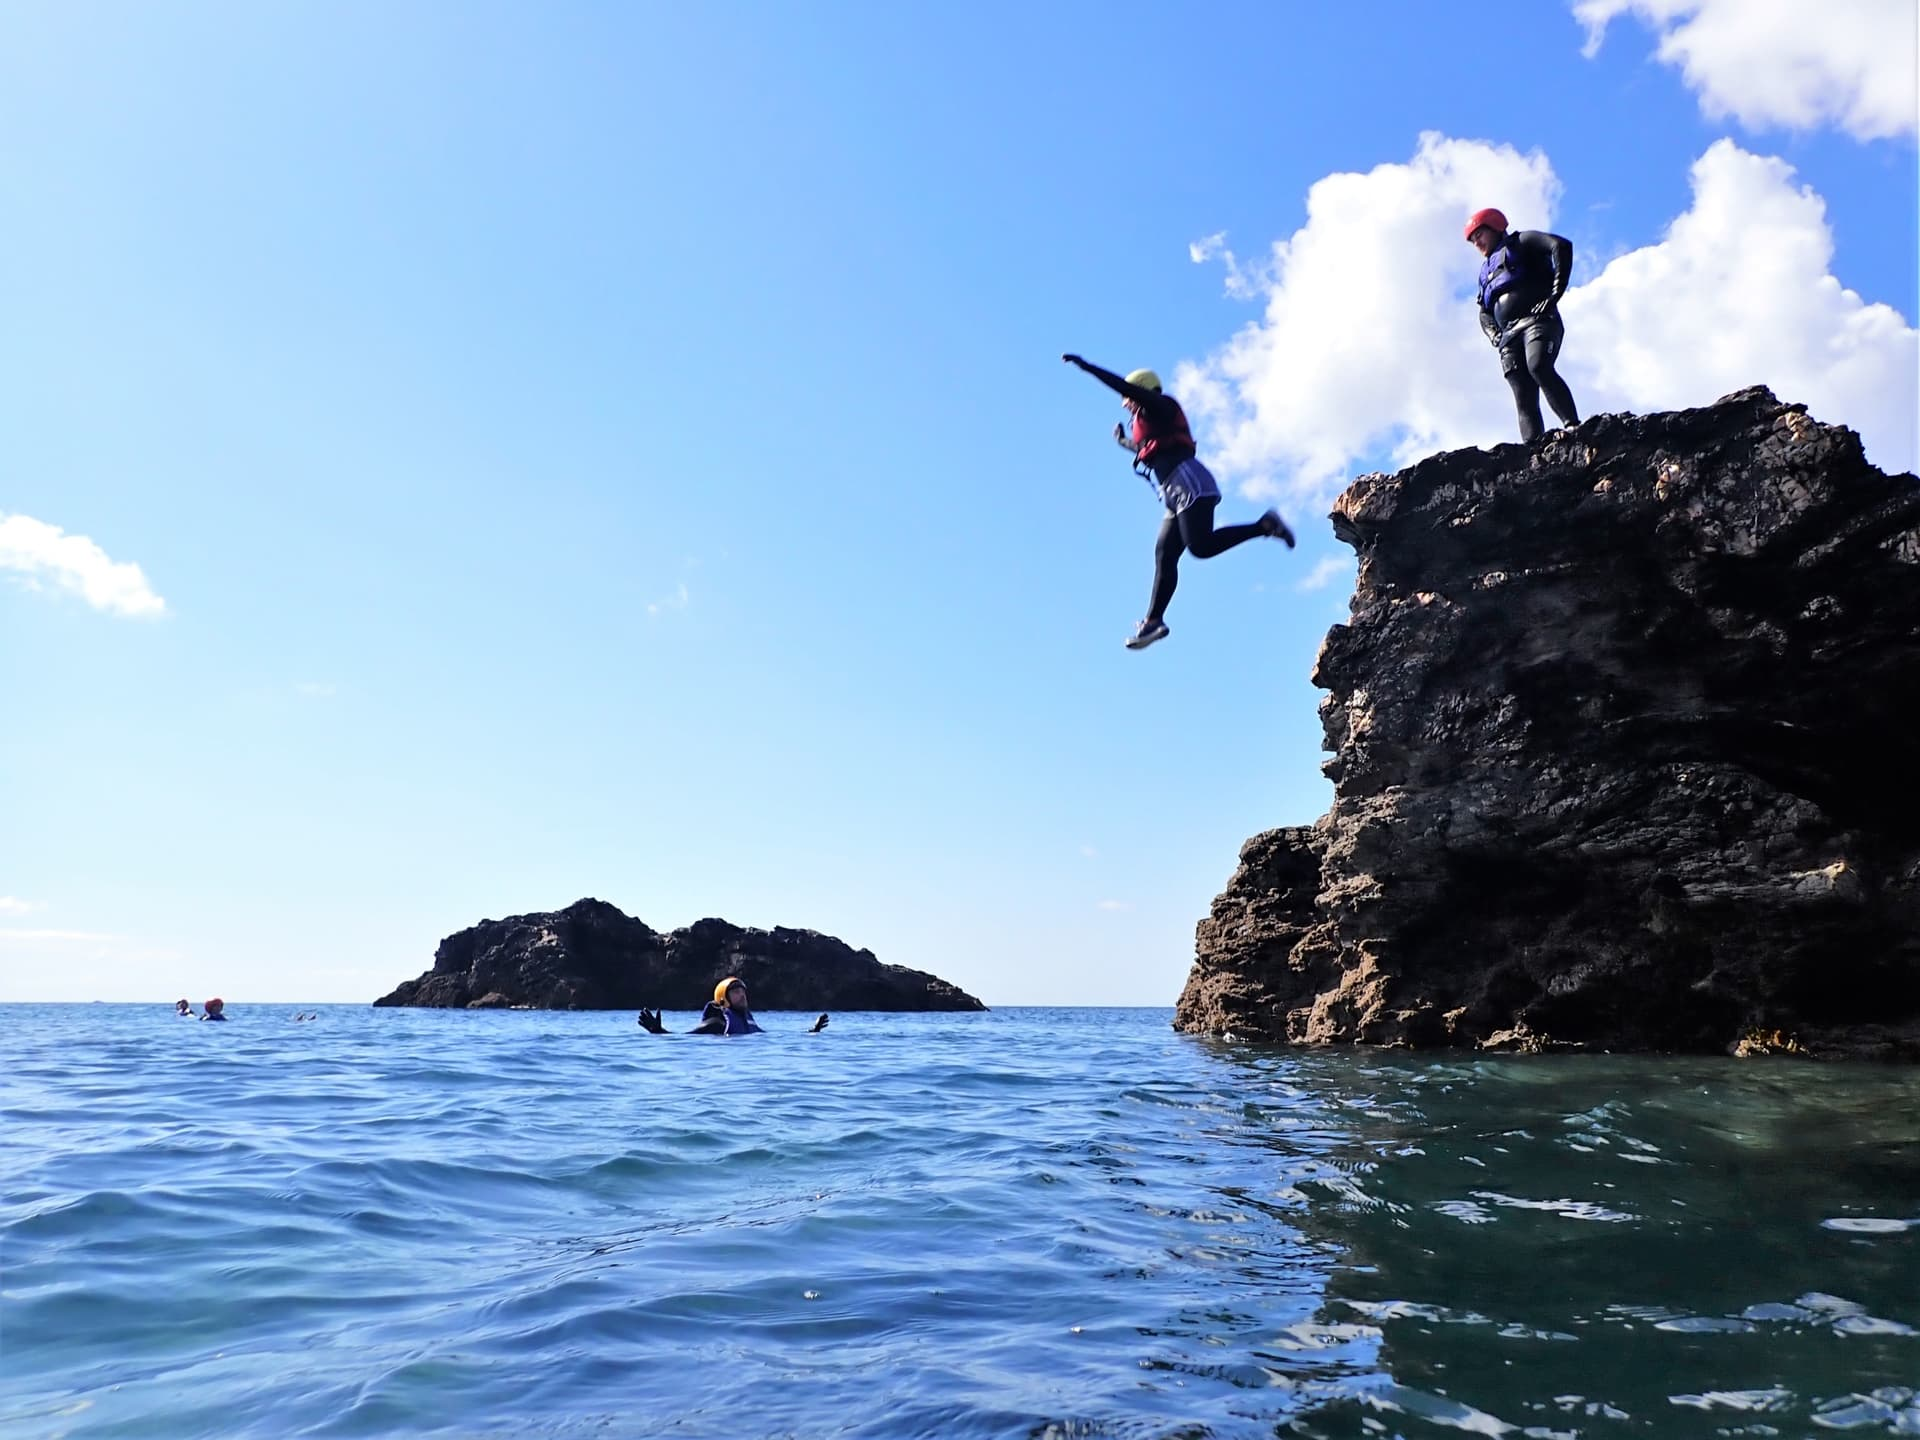 Jumping between the many small islands that make up coasteering at Praa Sands with Kernow Coasteering in Cornwall